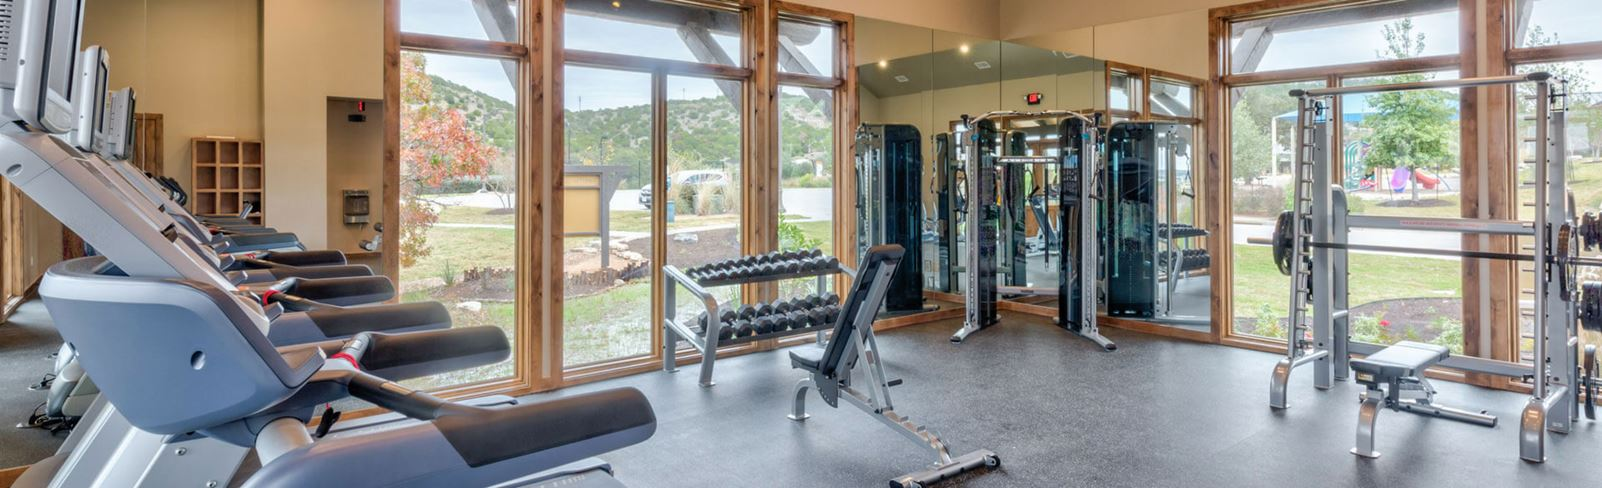 Sweetwater Austin, TX Fitness Center